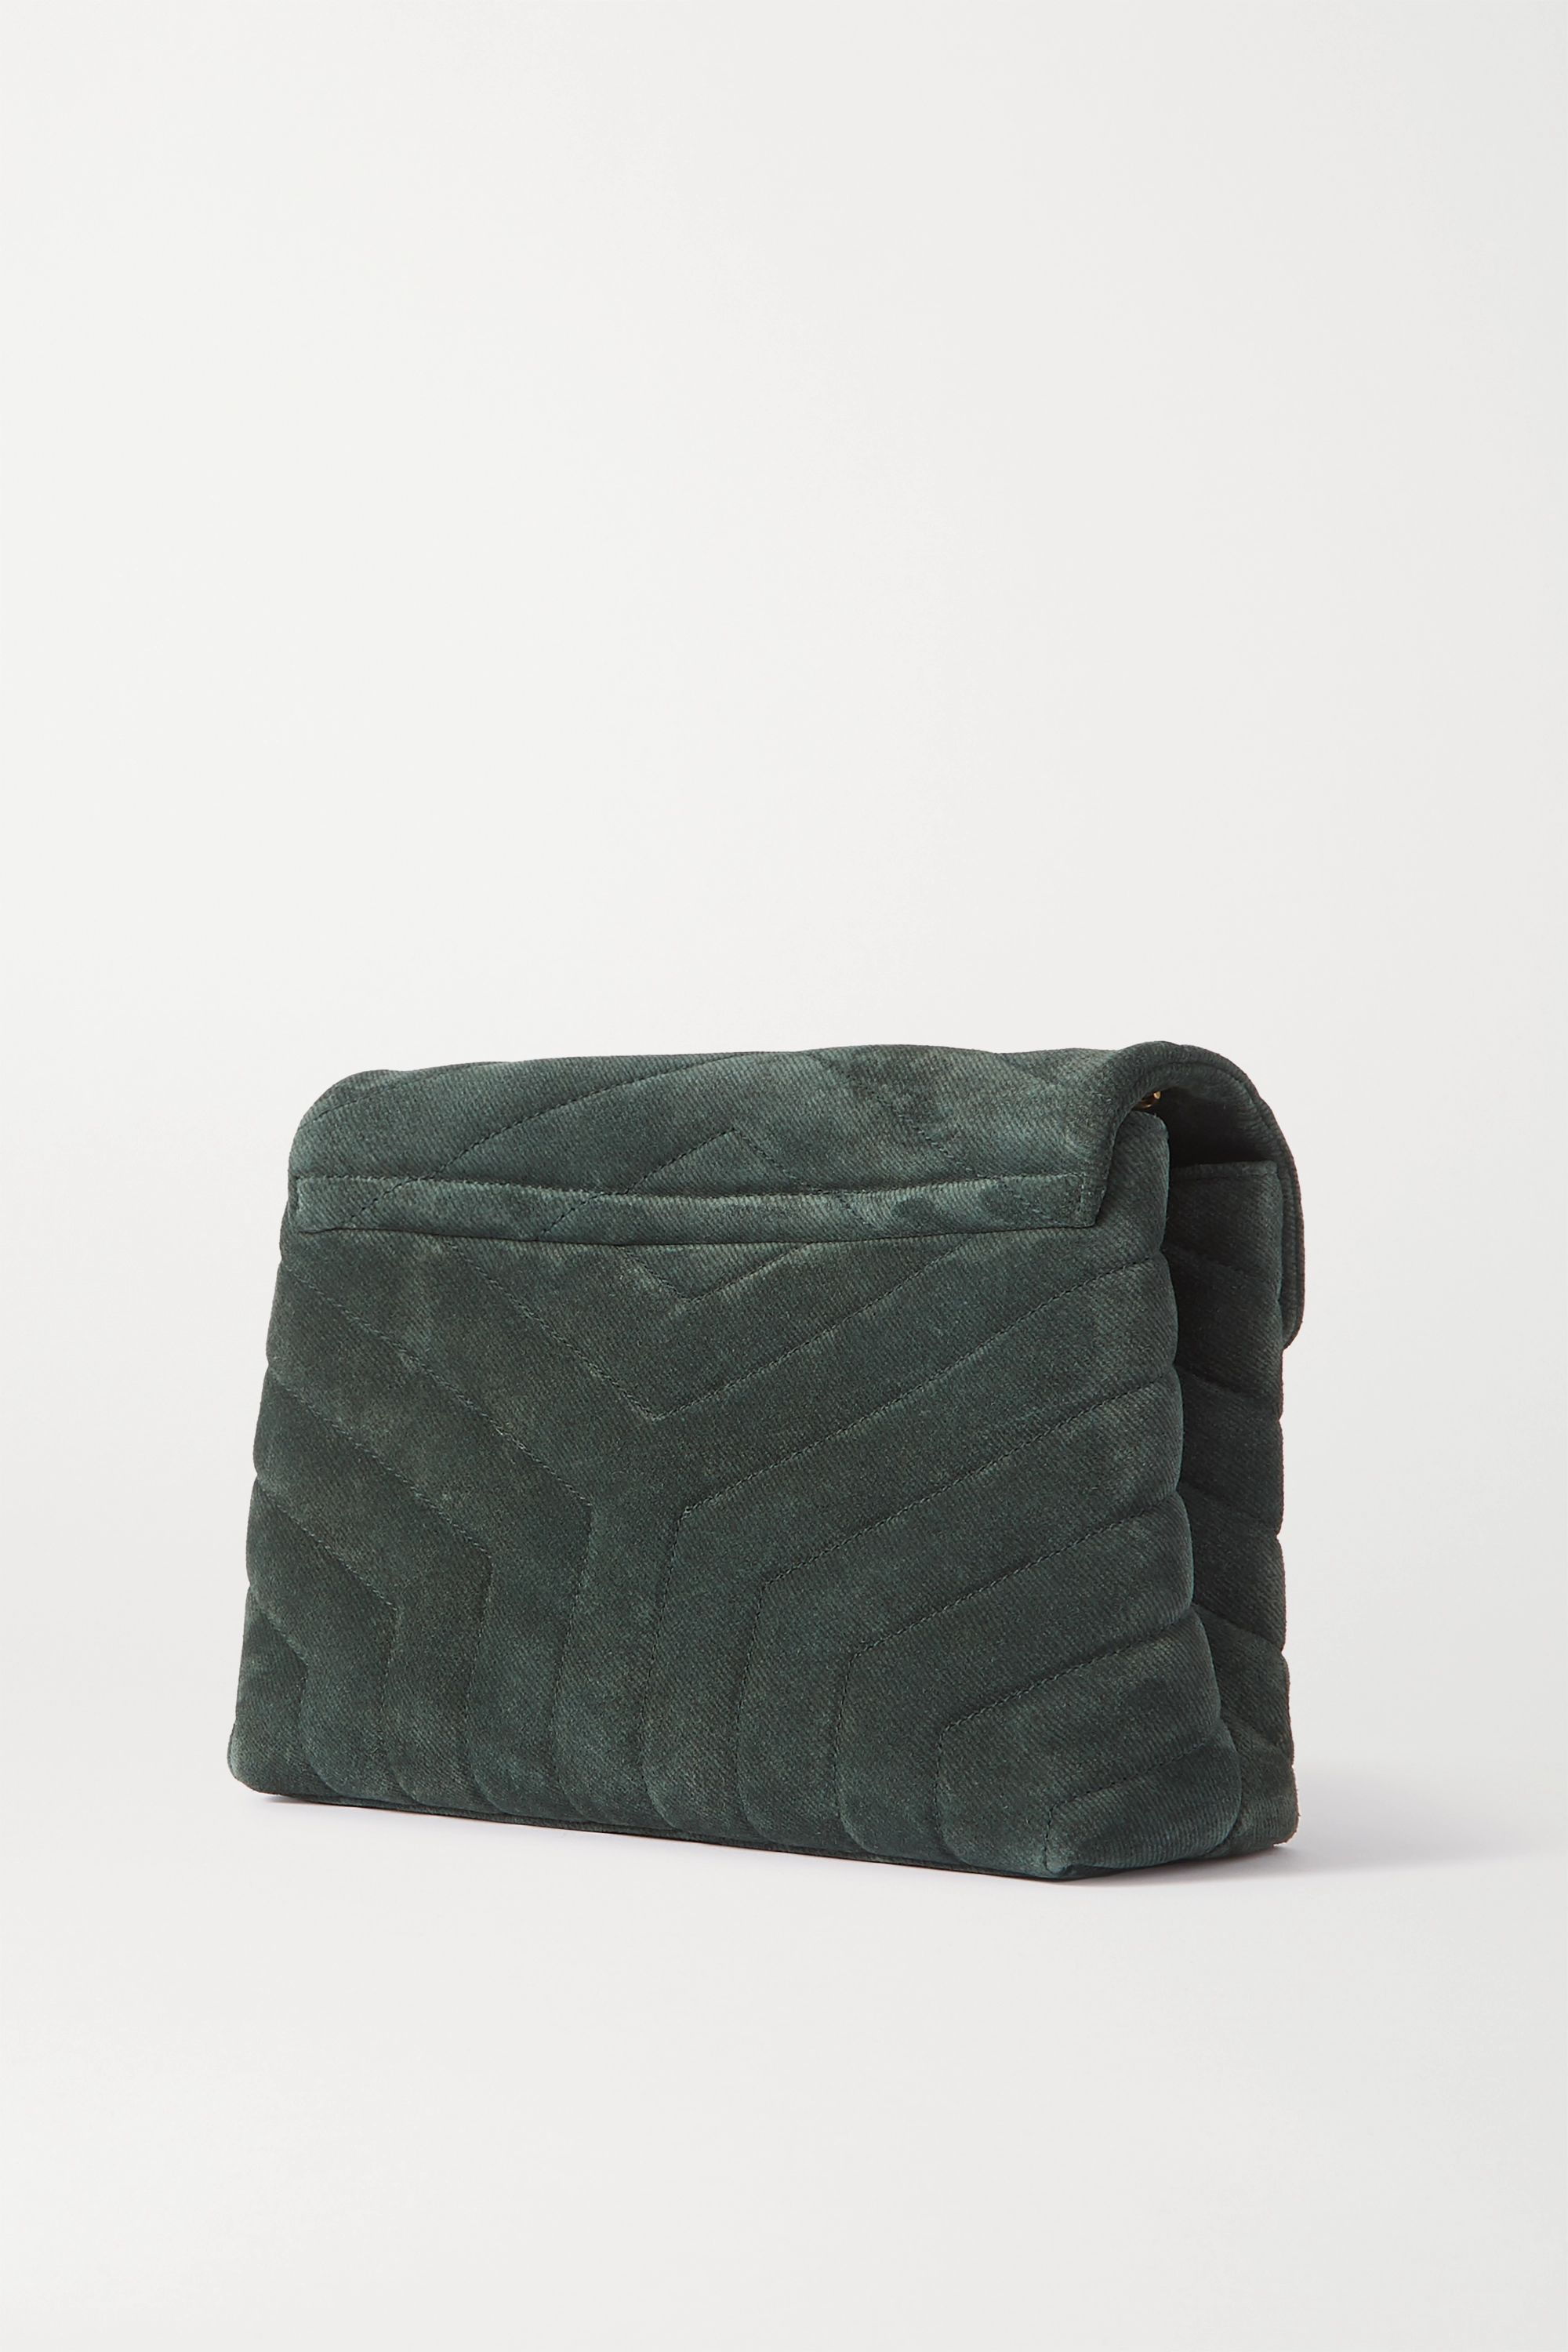 SAINT LAURENT Loulou small quilted suede shoulder bag